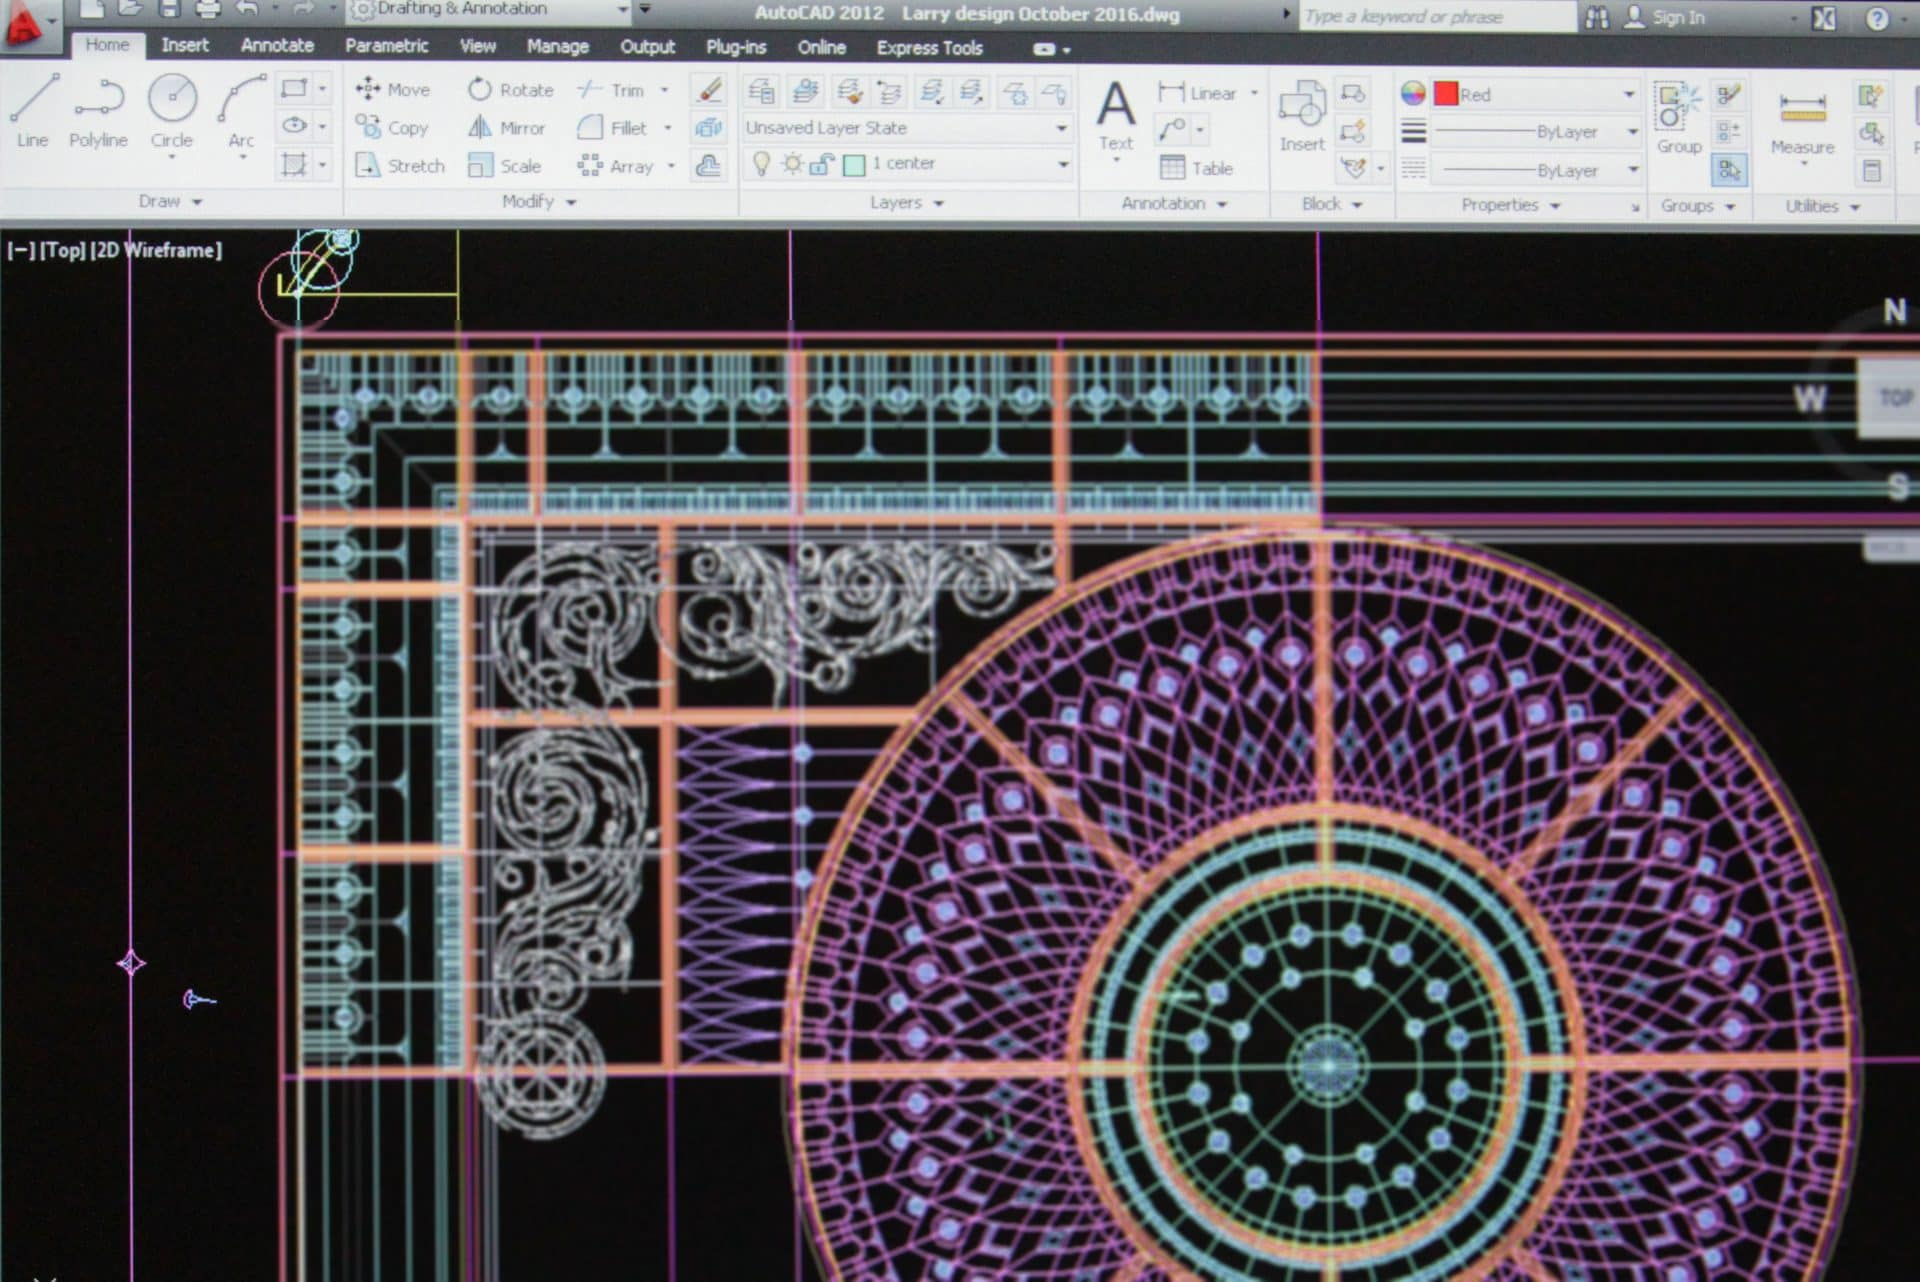 Stained glass dome design development process with AutoCAD in scale 1 to 1. Large scale stained glass domed ceiling design